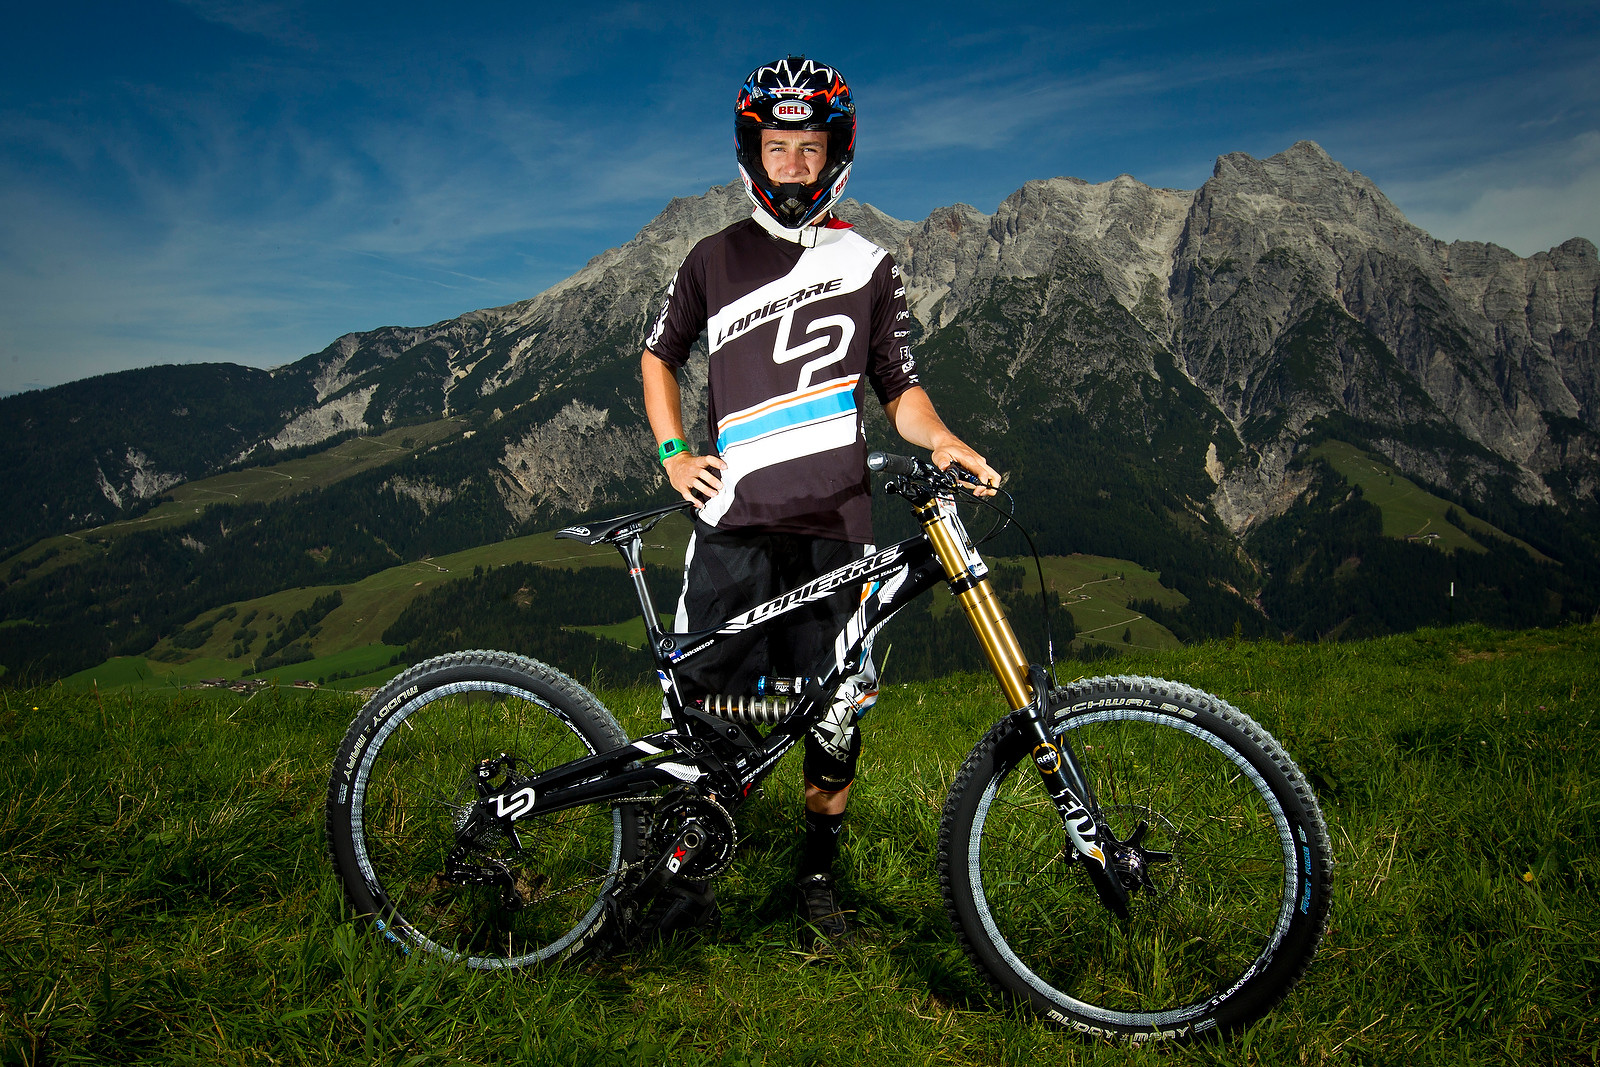 Sam Blenkinsop with his Lapierre - World Championships Riders and Bikes - Mountain Biking Pictures - Vital MTB